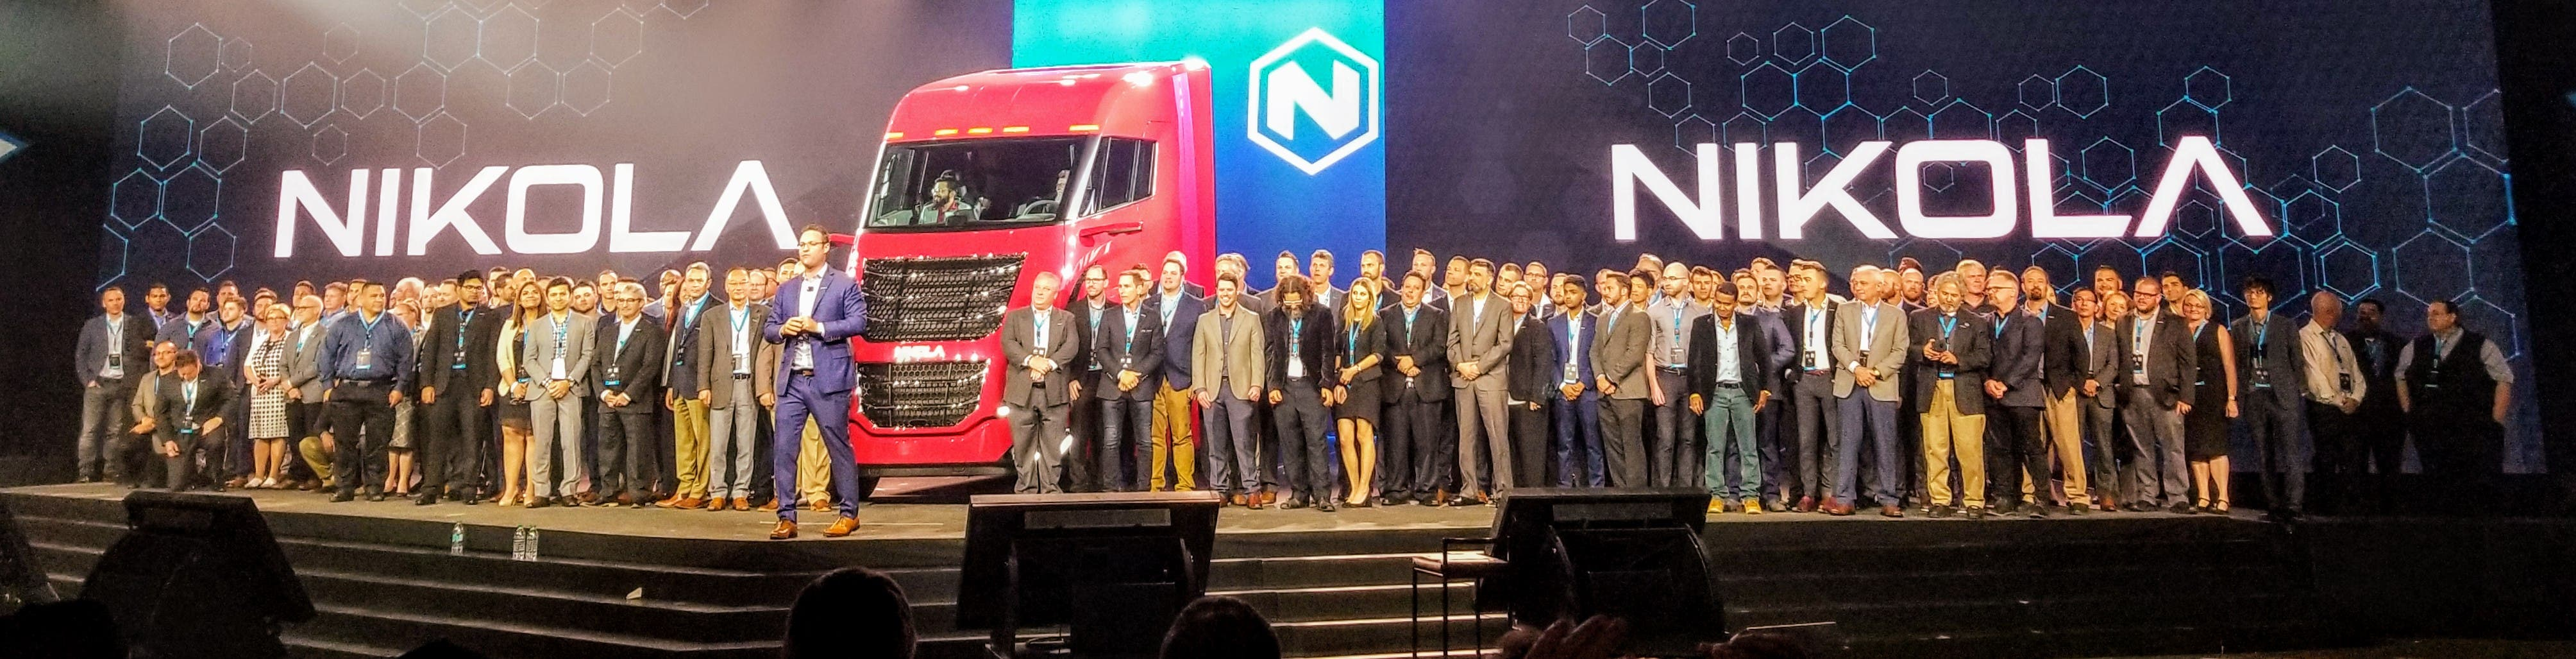 Head To Head: Nikola's Hydrogen Fuel Cell Trucks vs. The Tesla Semi